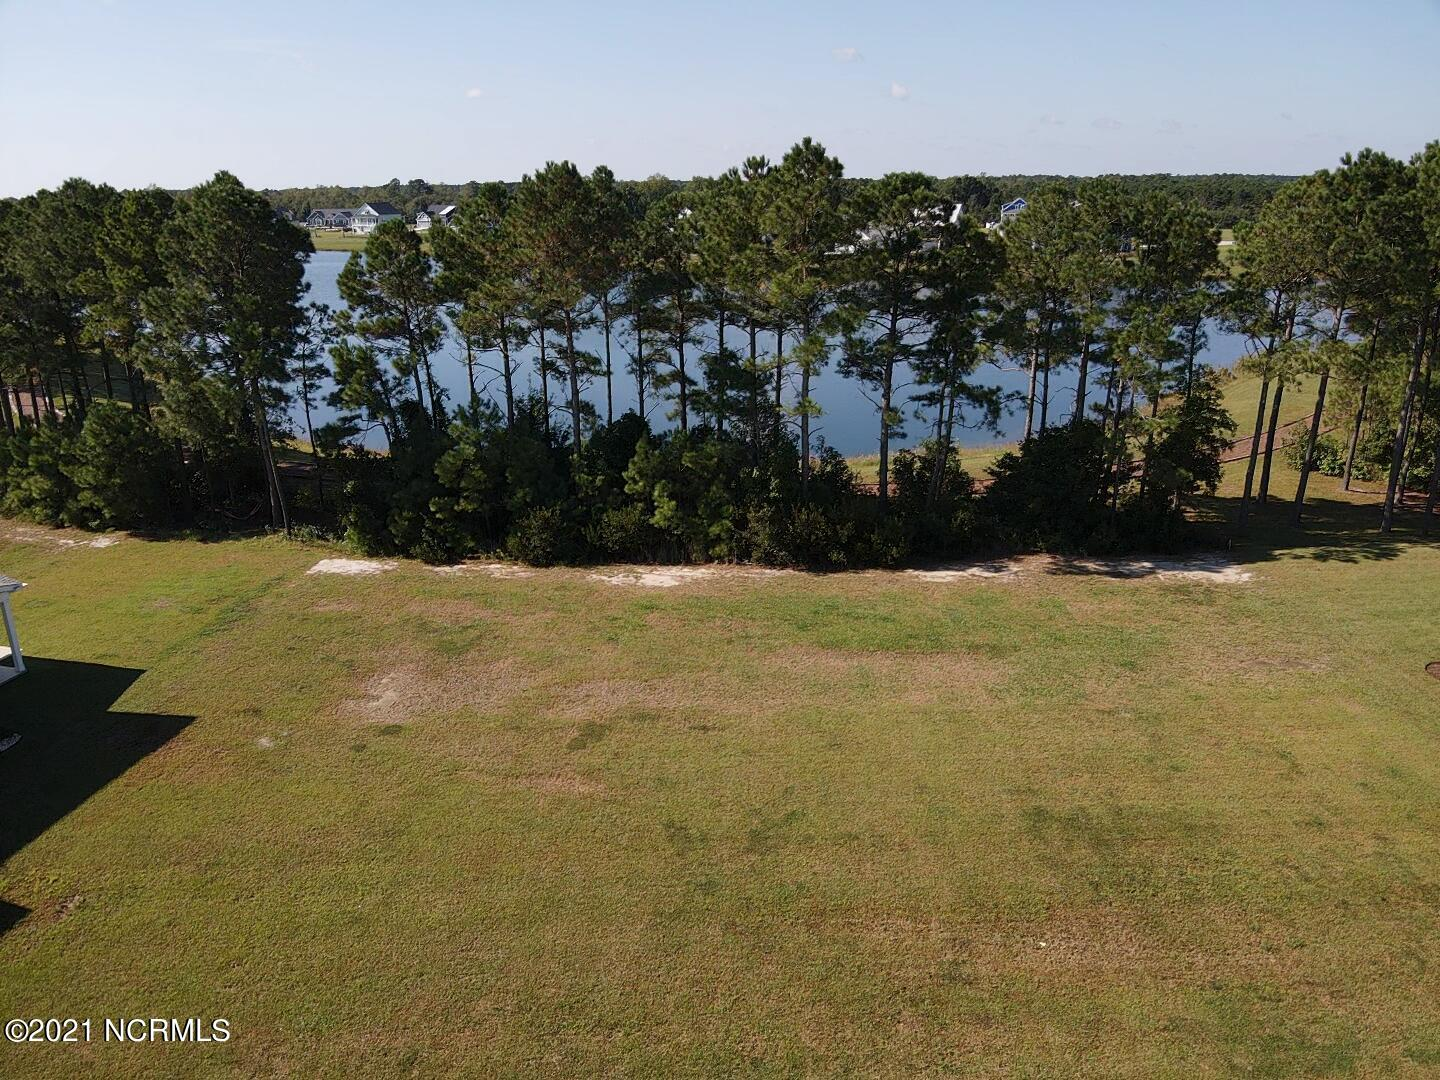 Vacant lakefront homesite, ready to build in luxury waterfront community of Summerhouse on Everett Bay! All the amenities are in place in this idyllic neighborhood, featuring a huge clubhouse, pool, fitness center, day docks, boat ramp, boat storage, pickle-ball court, tennis court, basketball court, running trails, playground, and more! With our Featured Builders, you can design your coastal home and start living the beach life in no time! Call today for more information!